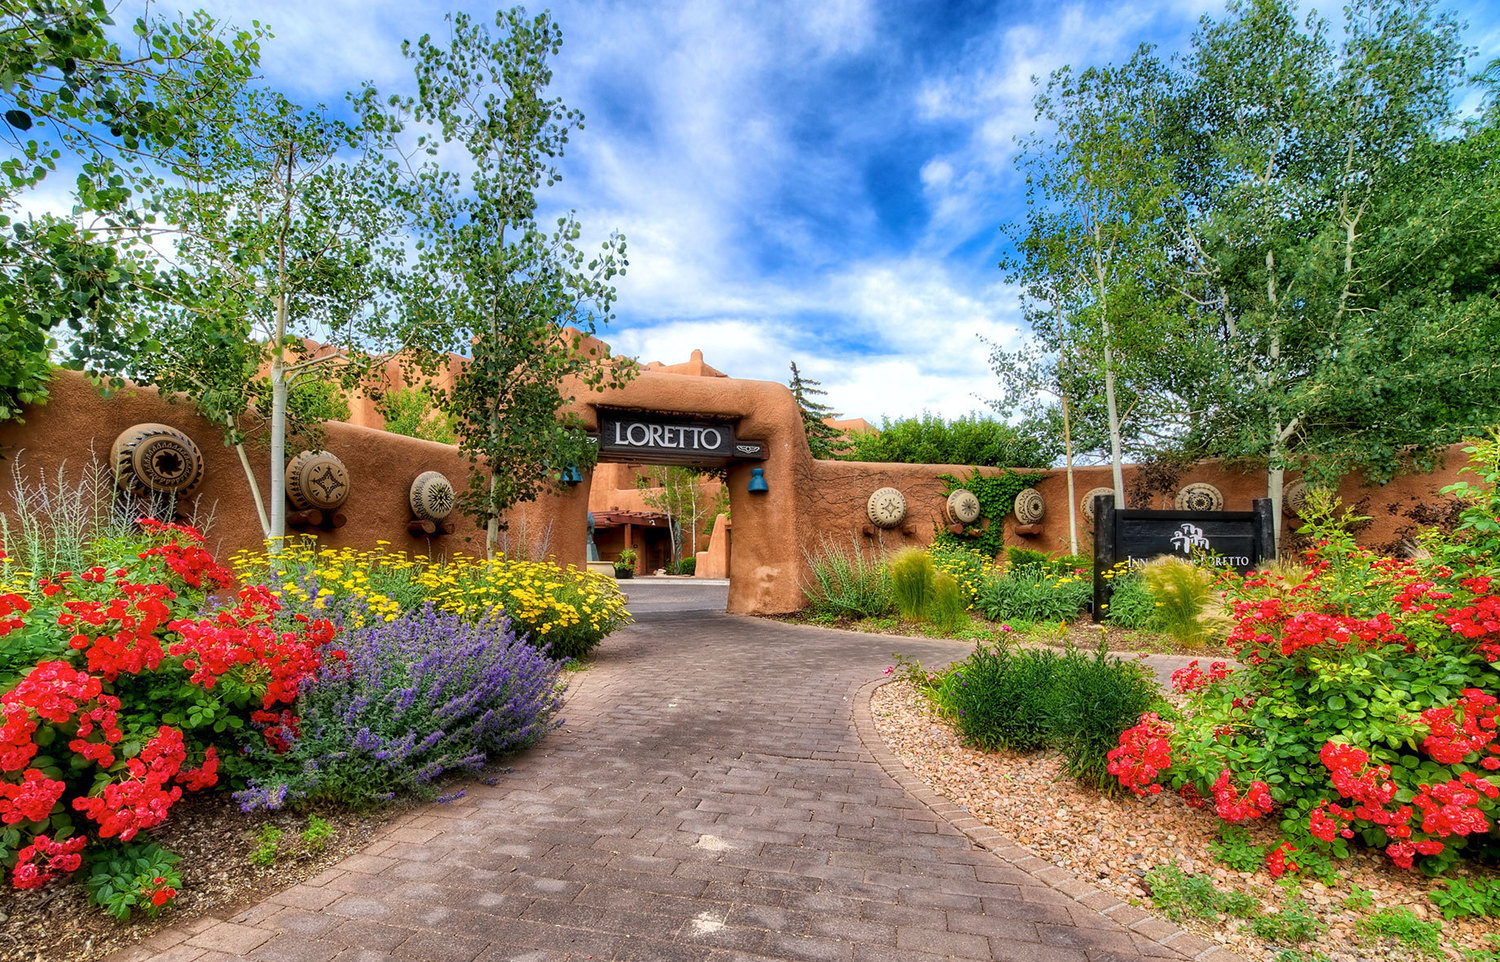 Security Jobs In Dallas >> Jobs at Inn and Spa at Loretto, Santa Fe, NM | Hospitality ...